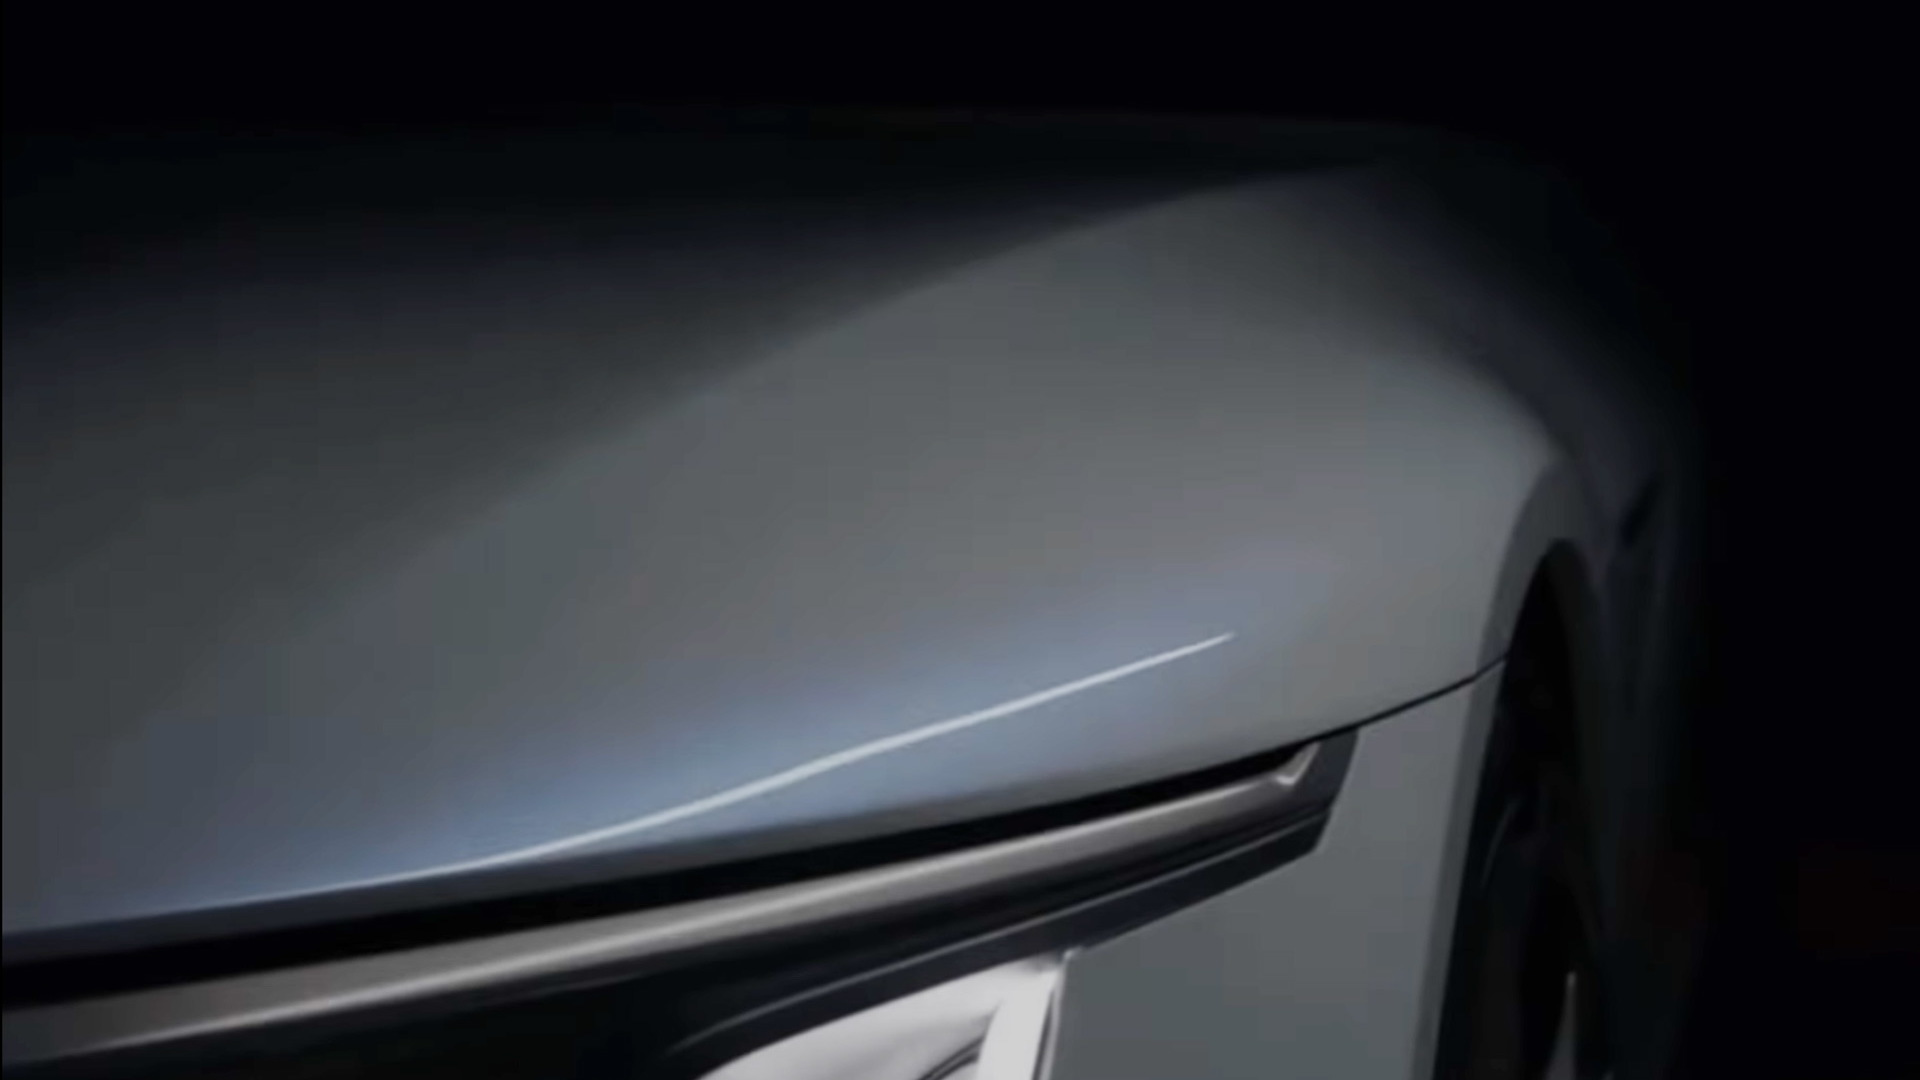 Cadillac Celestiq teased during General Motors' 2021 CES presentation